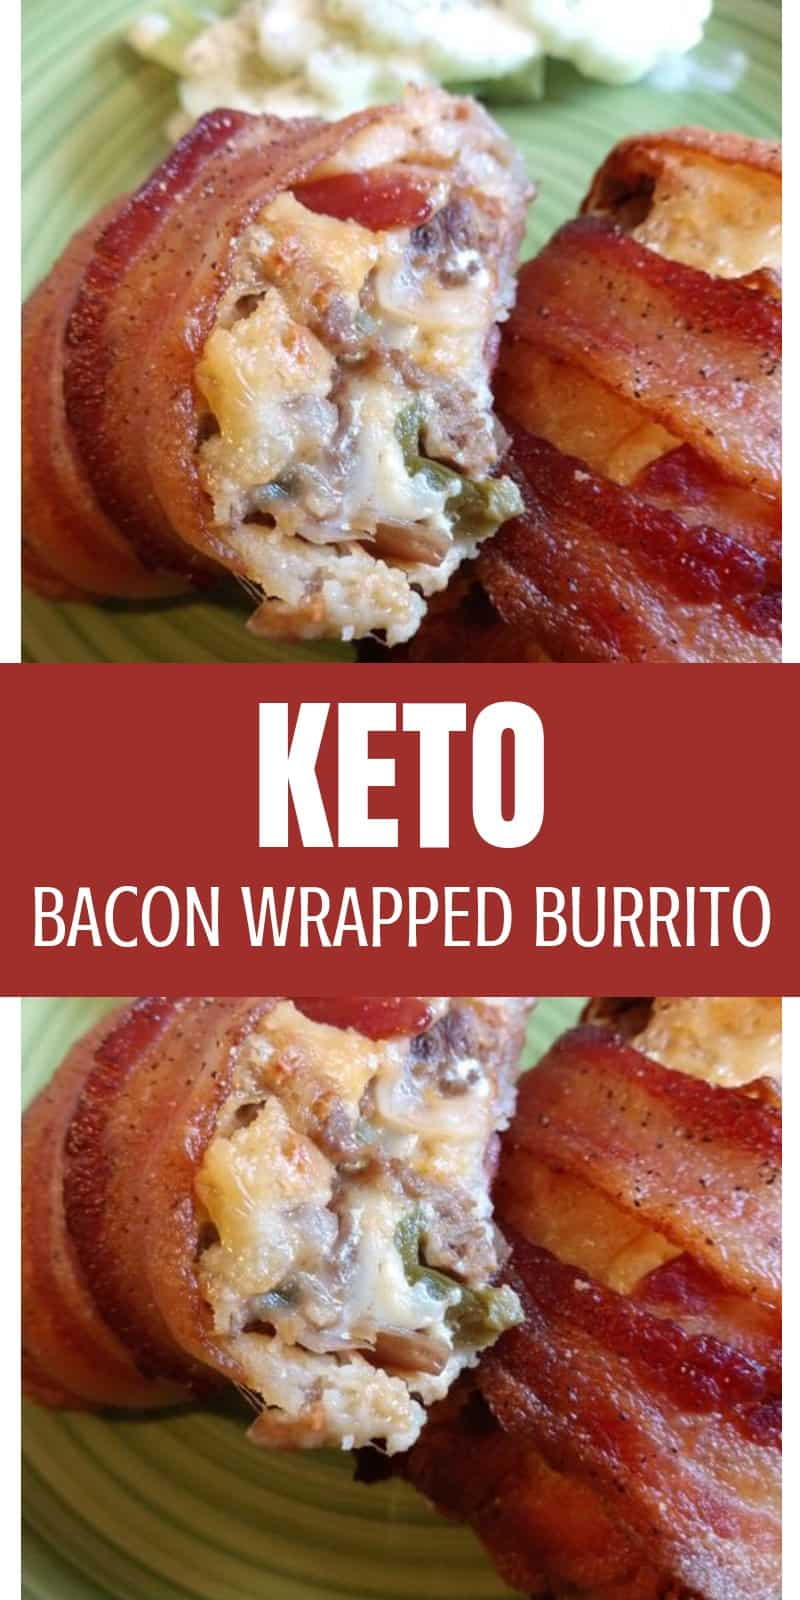 This keto bacon wrapped burrito recipe is made with keto fathead pizza dough and wrapped in bacon! There's no need for eating keto on the go when you can make a delicious keto burrito like this at home!